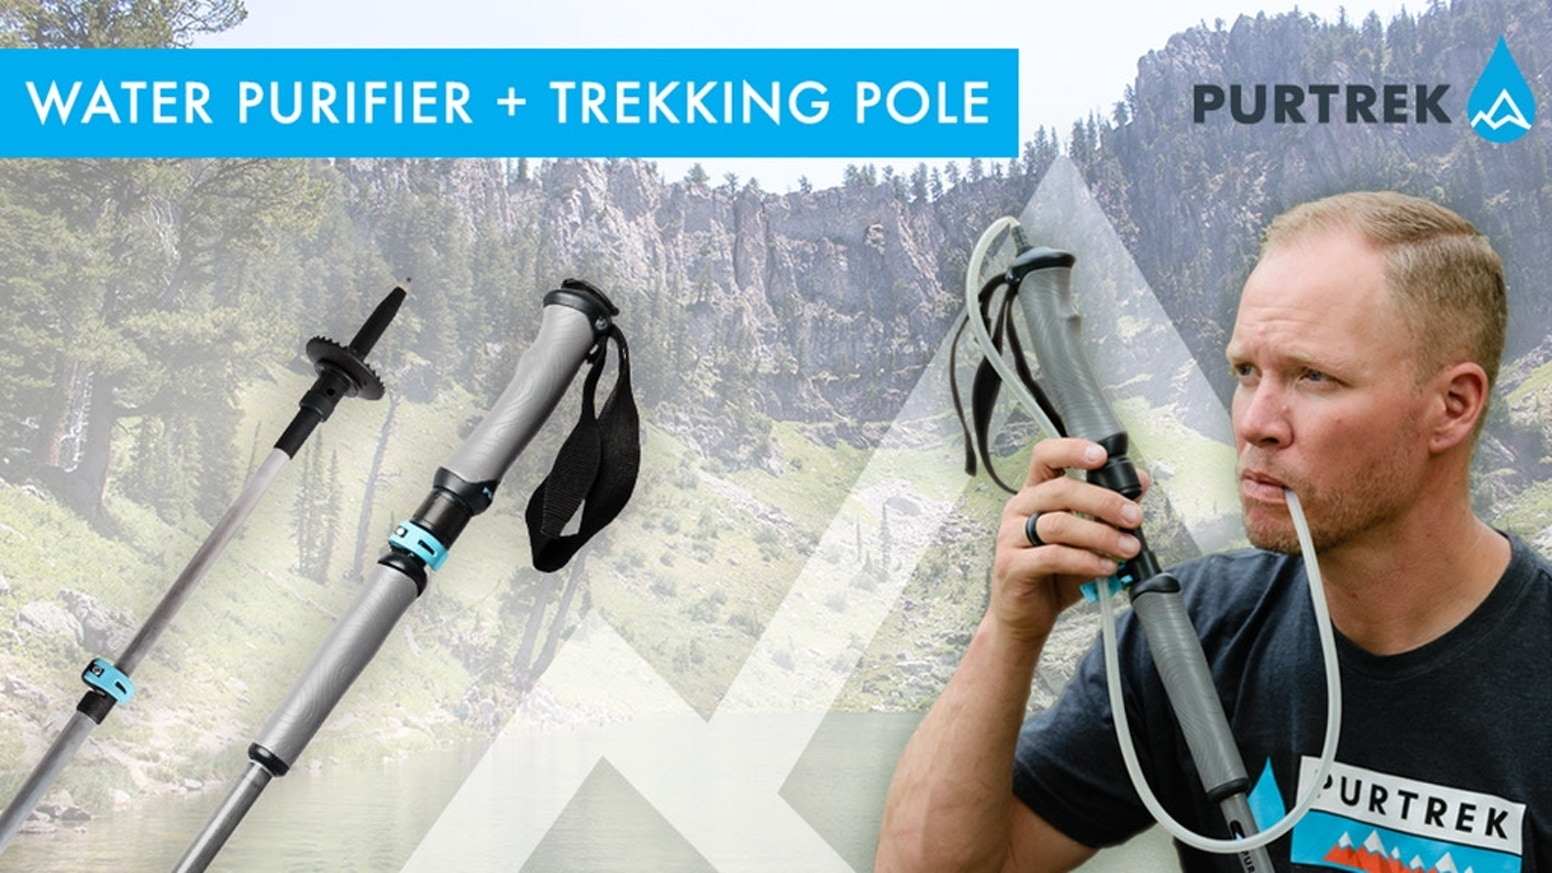 PURTREK combines two must-have items into one efficient tool. The ultimate hiking tool is here. A trekking pole and water filtration pump Carry less weight & Never forget your filter again.